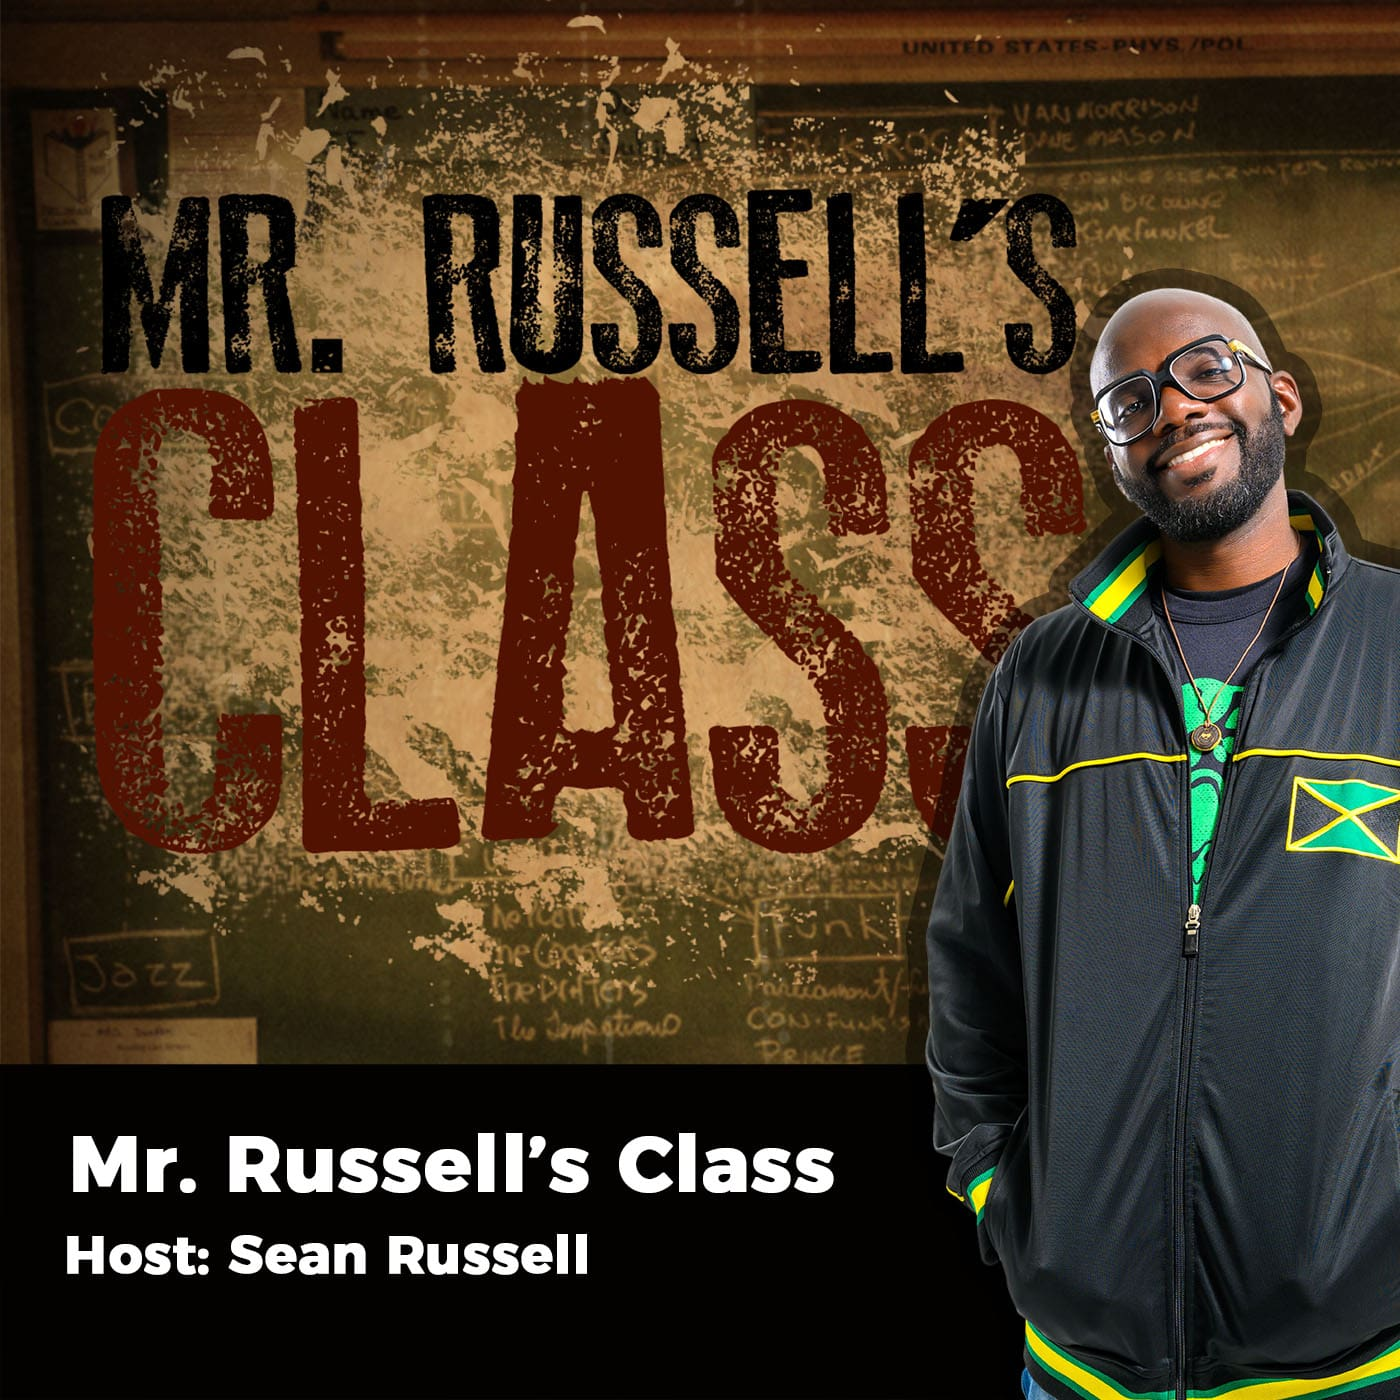 Artwork for podcast Mr. Russell's Class